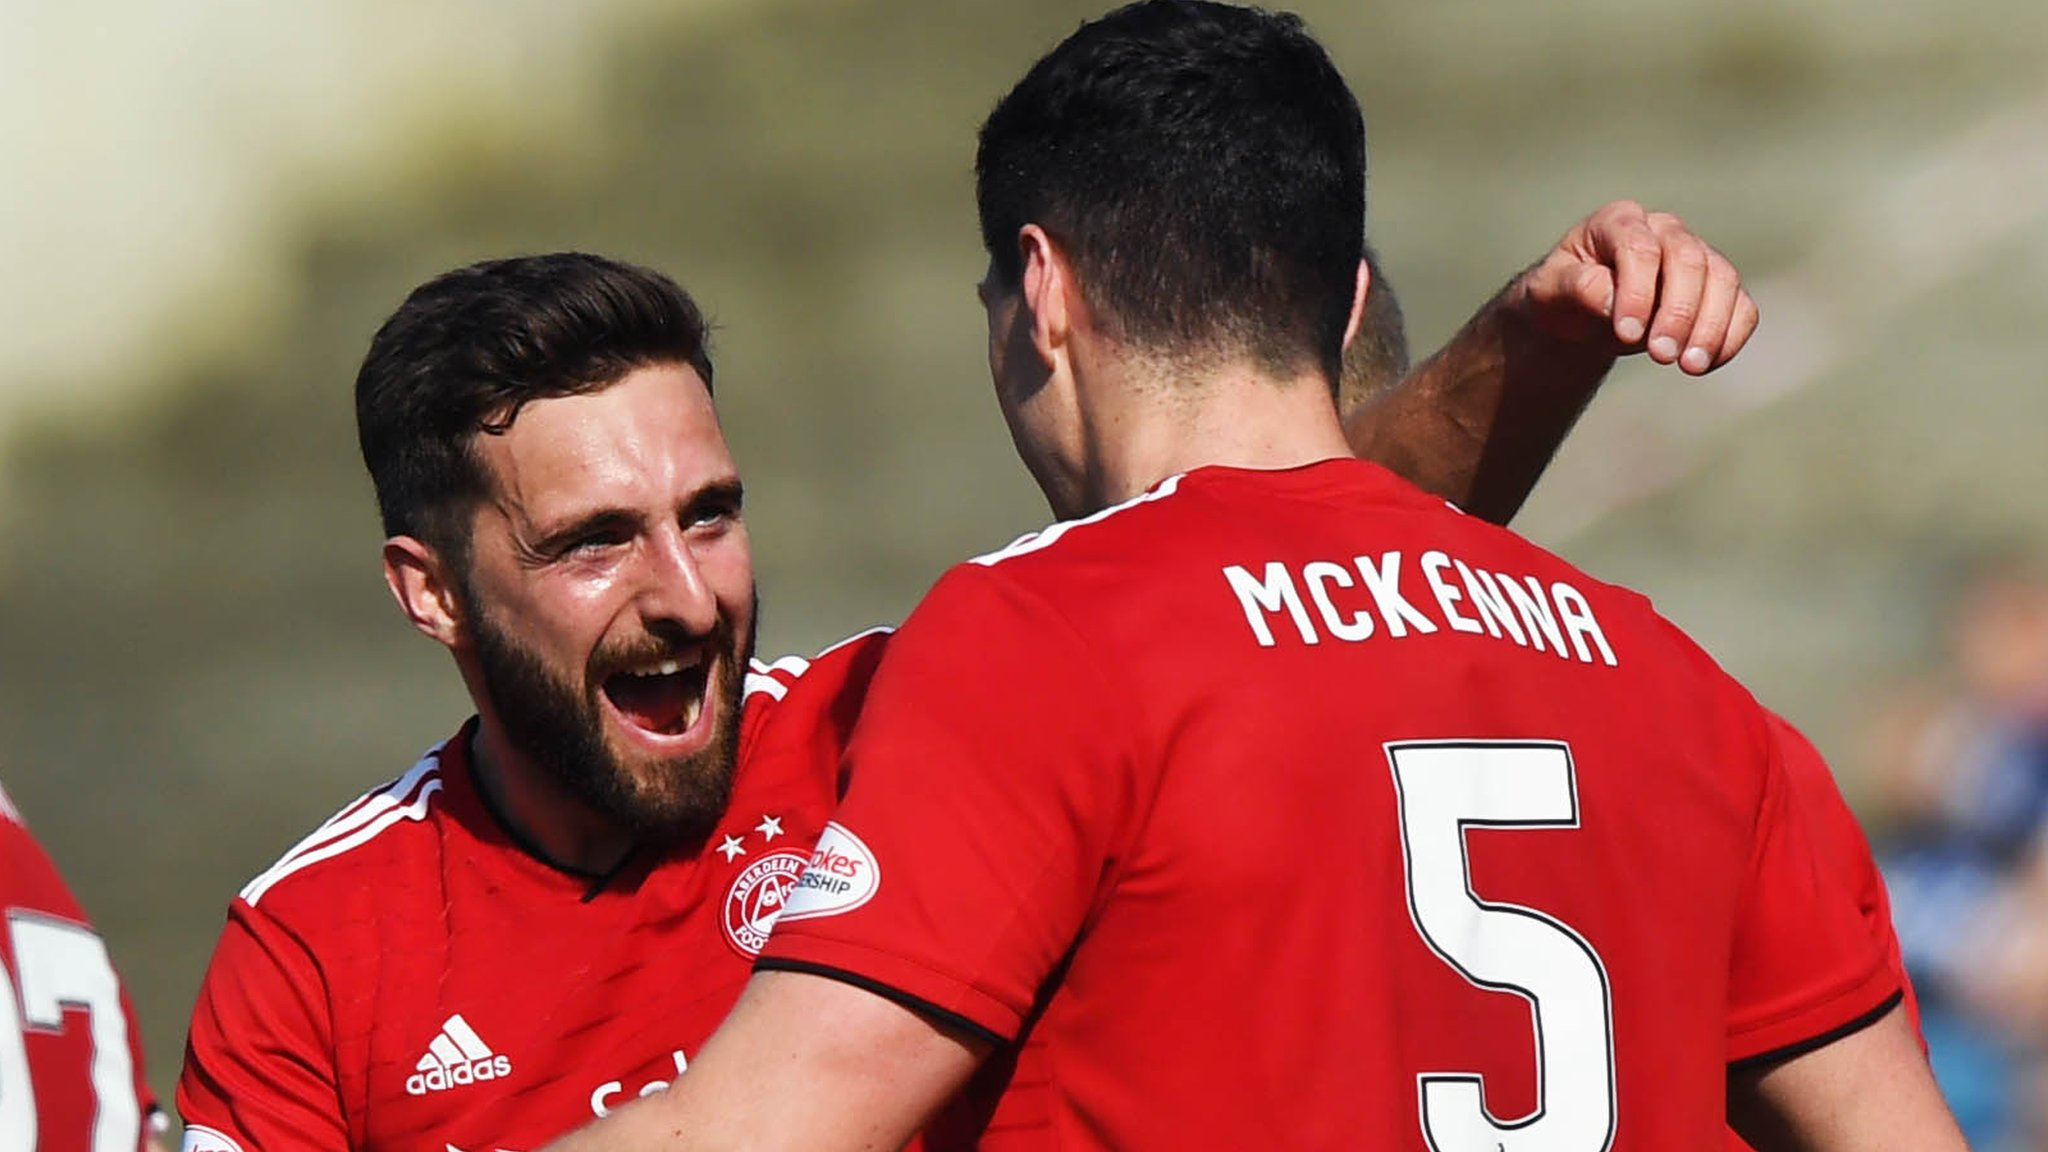 Scottish Premiership: Kilmarnock 0-1 Aberdeen